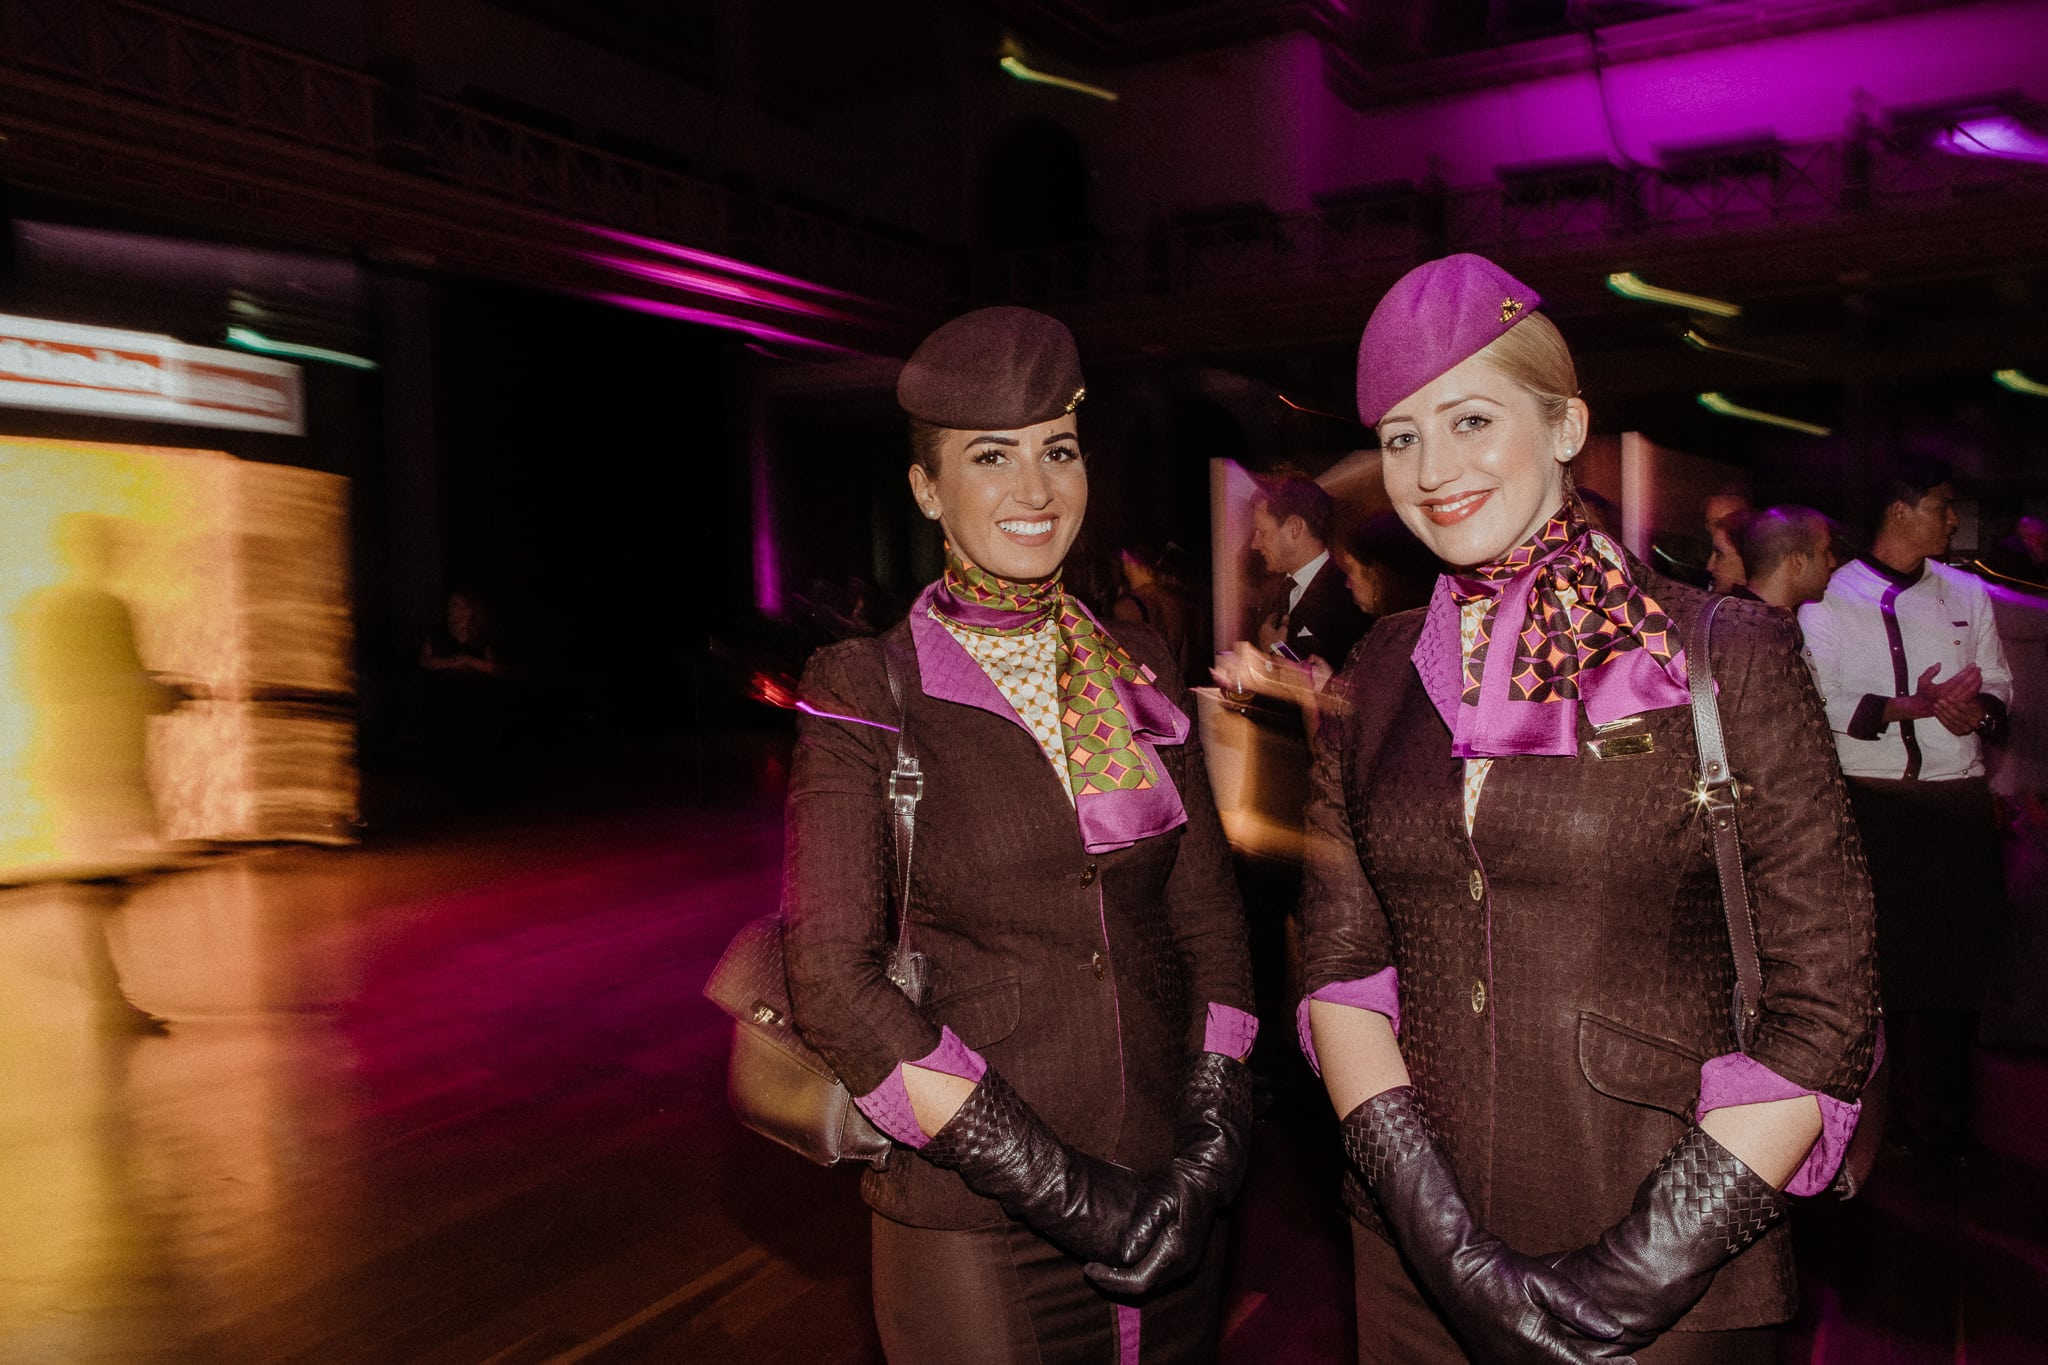 flight attendants from etihad at melbourne event